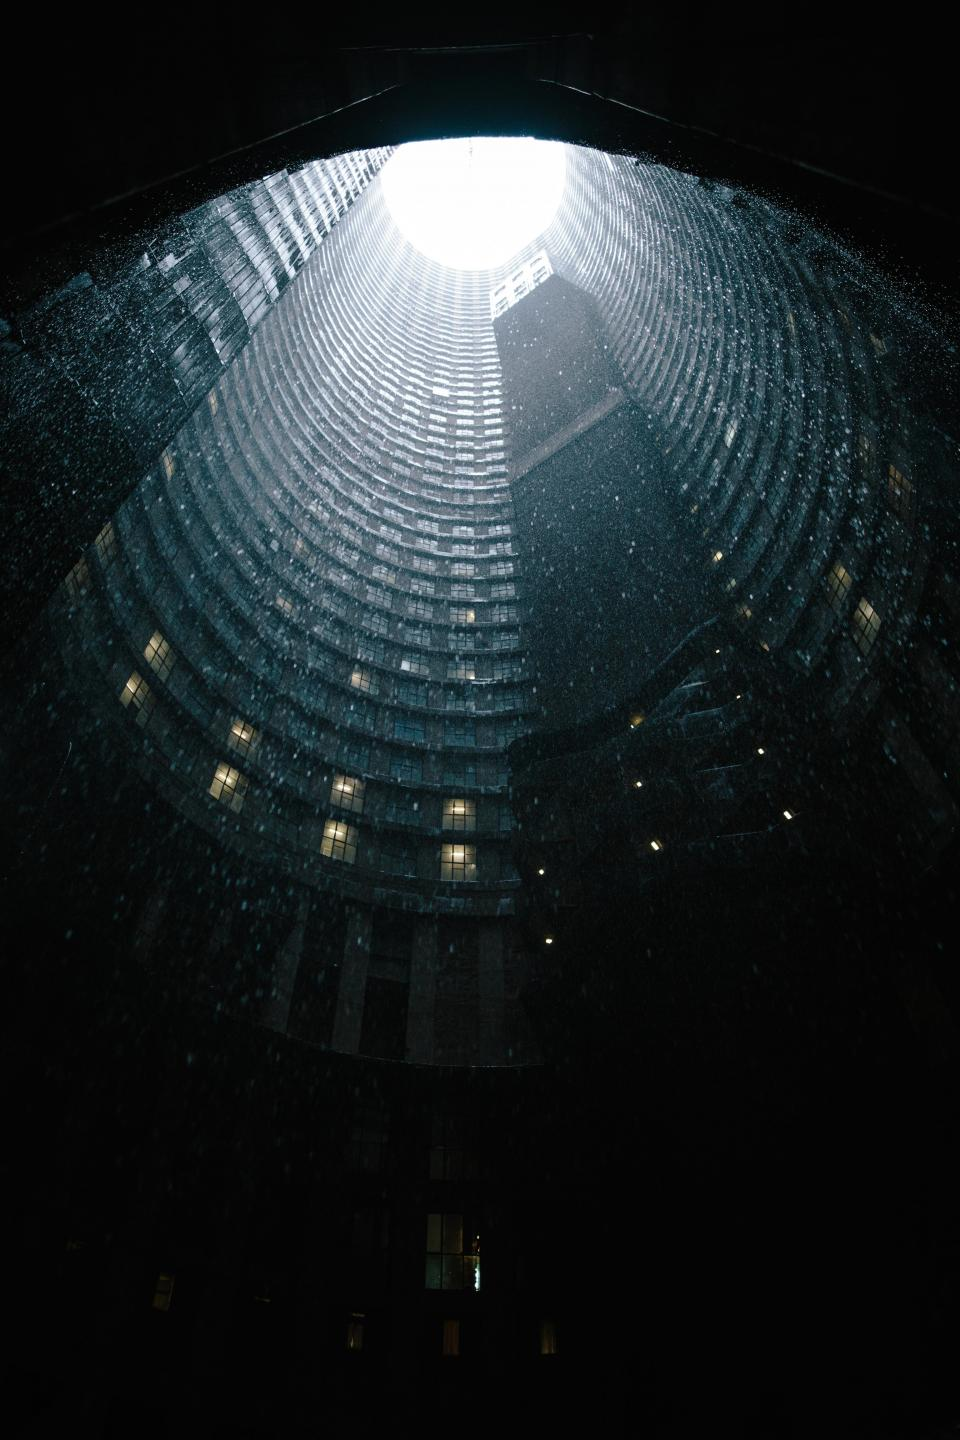 architecture building infrastructure skyscraper tower dark rain raining